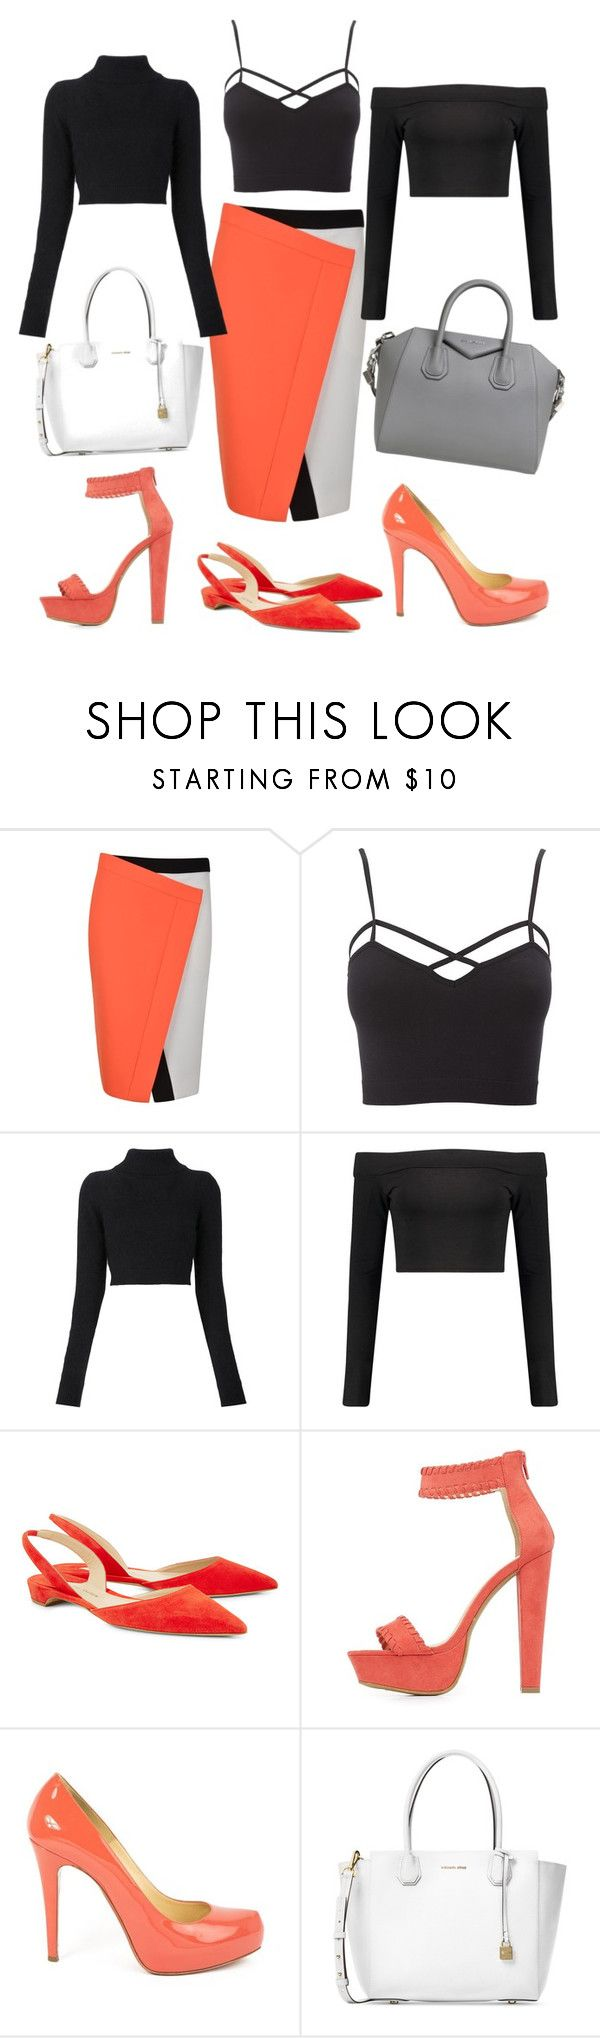 """Feature Item: FENDI Skirt"" by lady-g-graphics ❤ liked on Polyvore featuring Fendi, Charlotte Russe, Balmain, Boohoo, Paul Andrew, Christian Louboutin, Michael Kors, Givenchy and plus size clothing"